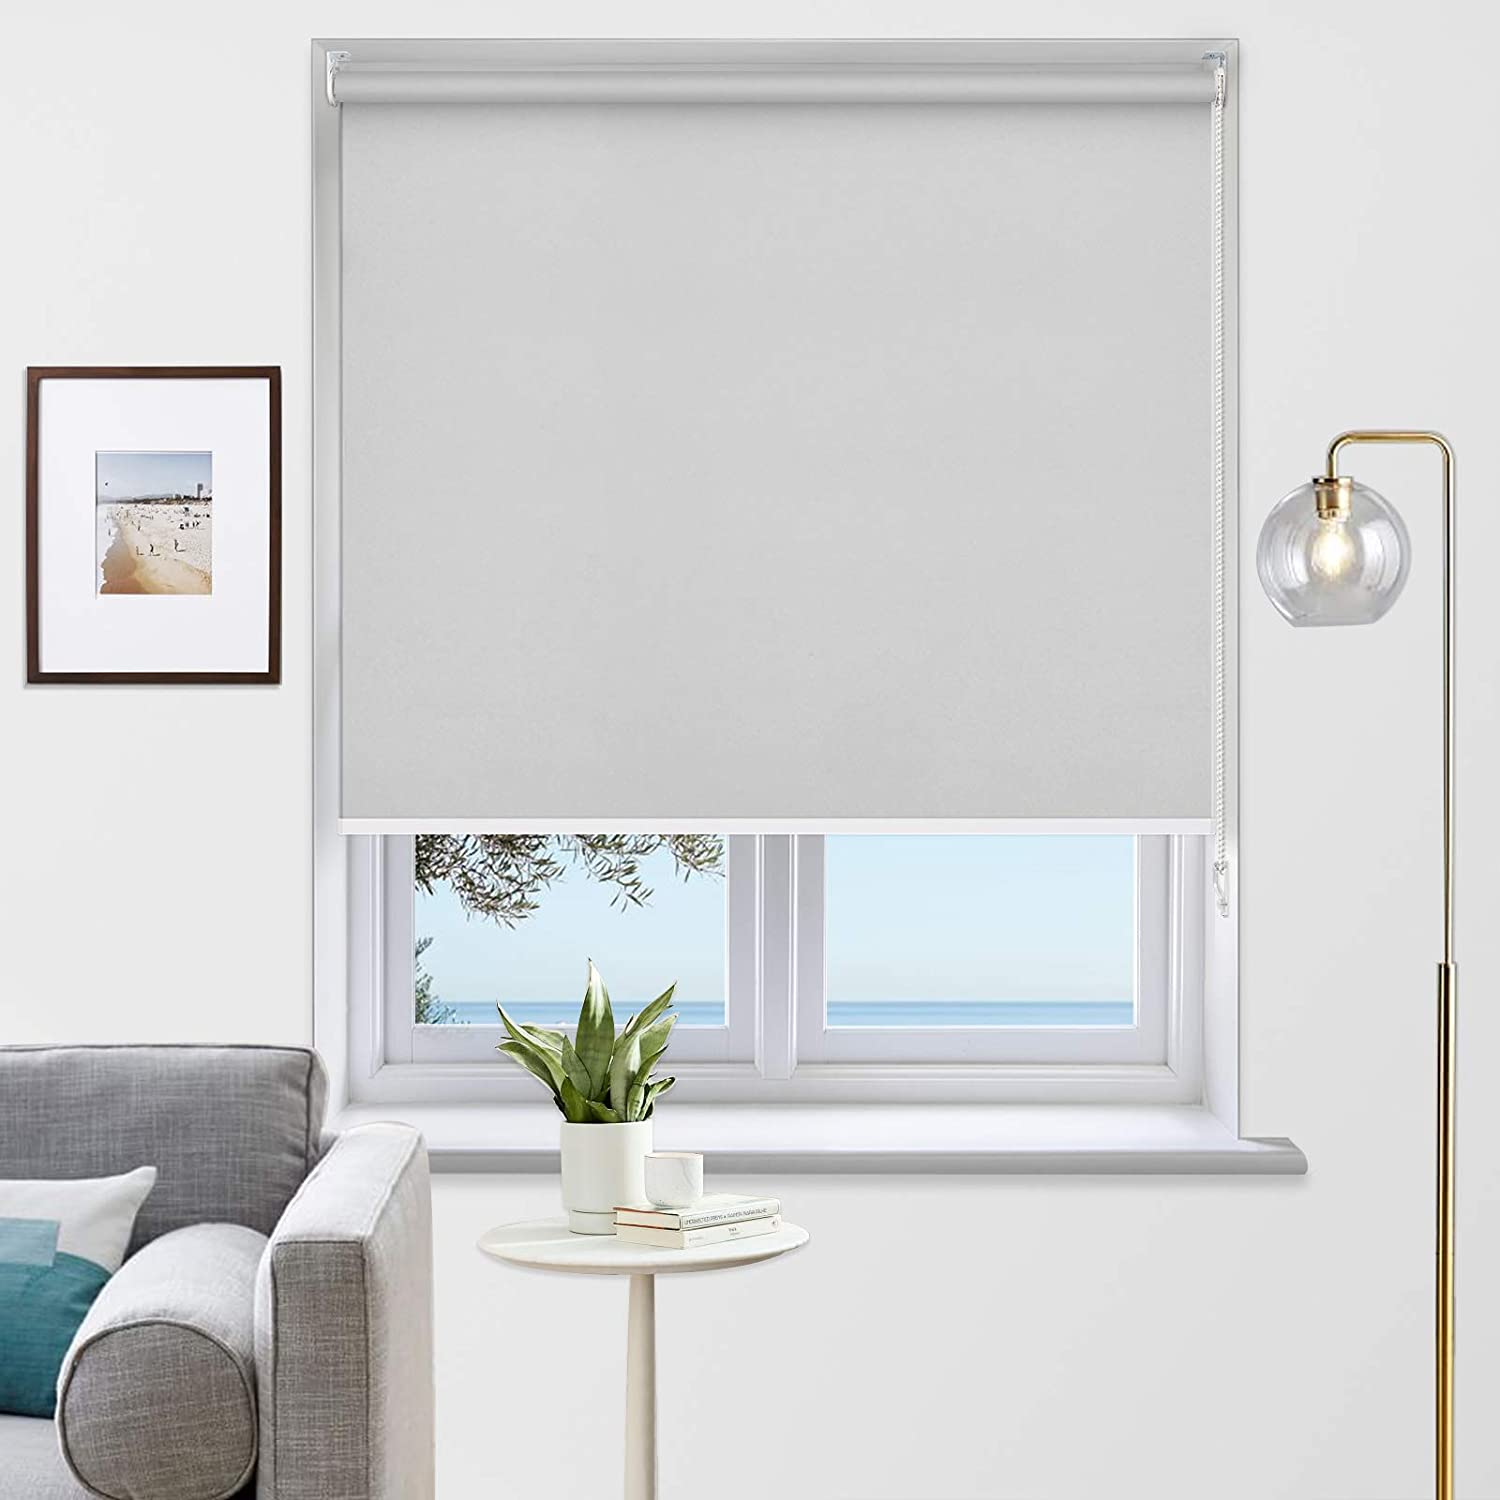 MiLin Blackout Roller Shades Room Darkening Window Blinds and Shades, Custom Cut to Size, Waterproof Thermal Insulated for Home & Office - Light Gray 35